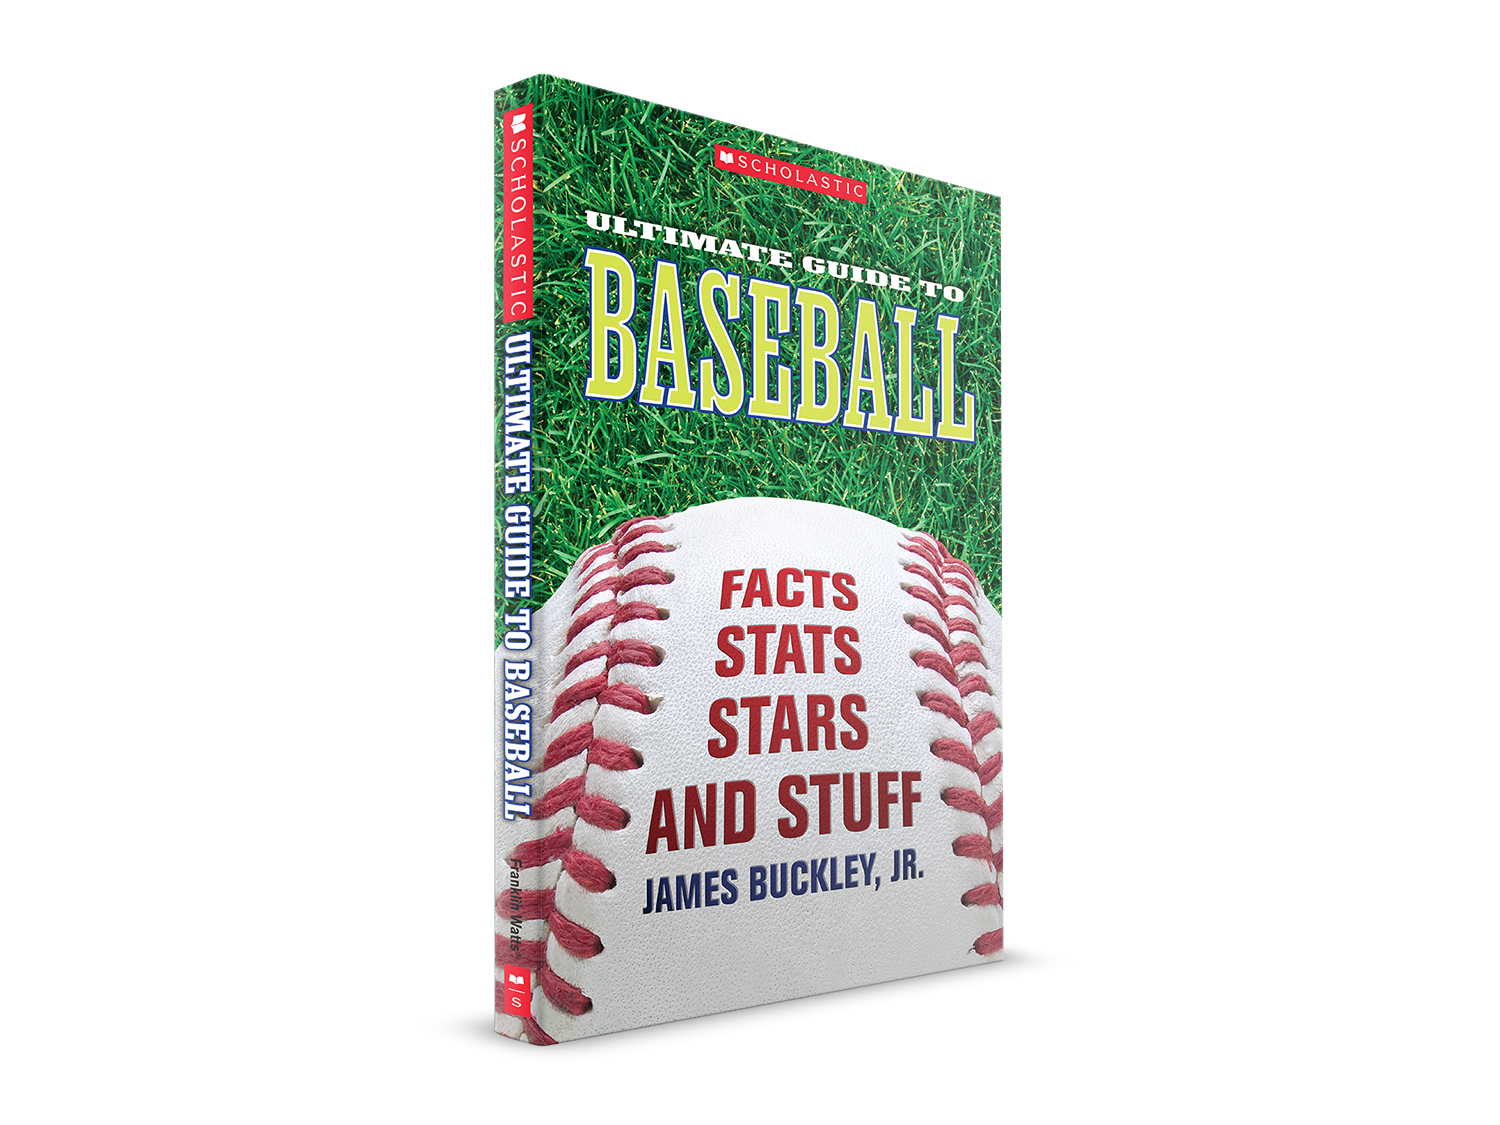 ultspo-baseball-children's-trade-nonfiction-book-cover2.png